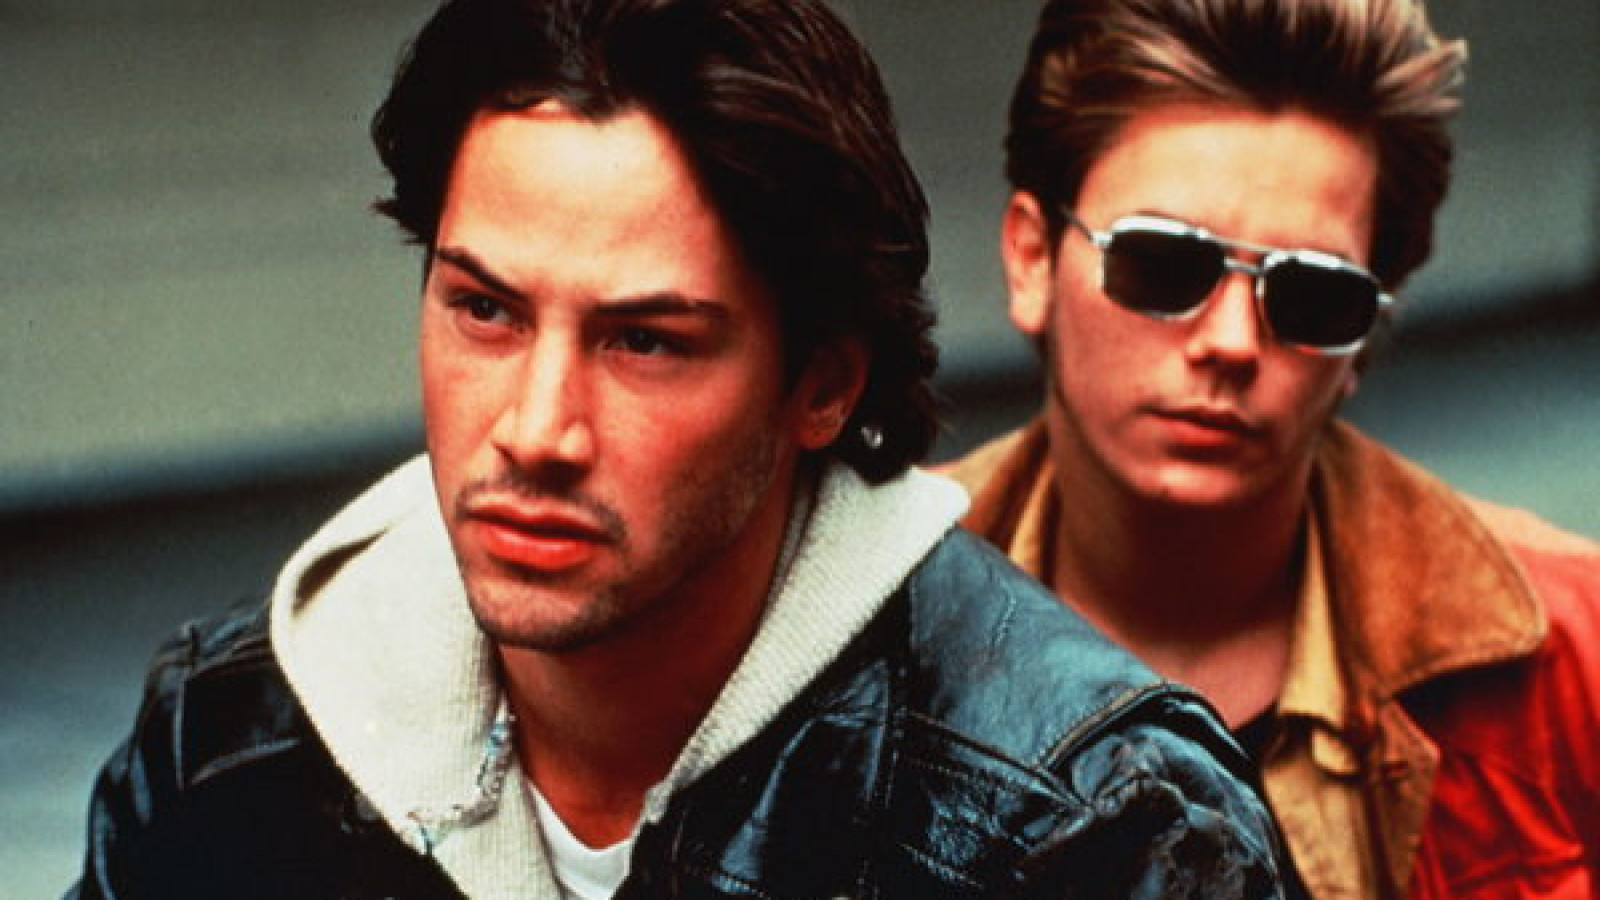 Title: MY OWN PRIVATE IDAHO ¥ Pers: REEVES, KEANU / PHOENIX, RIVER ¥ Year: 1991 ¥ Dir: VAN SANT, GUS ¥ Ref: MYO006AB ¥ Credit: [ NEW LINE / THE KOBAL COLLECTION ]